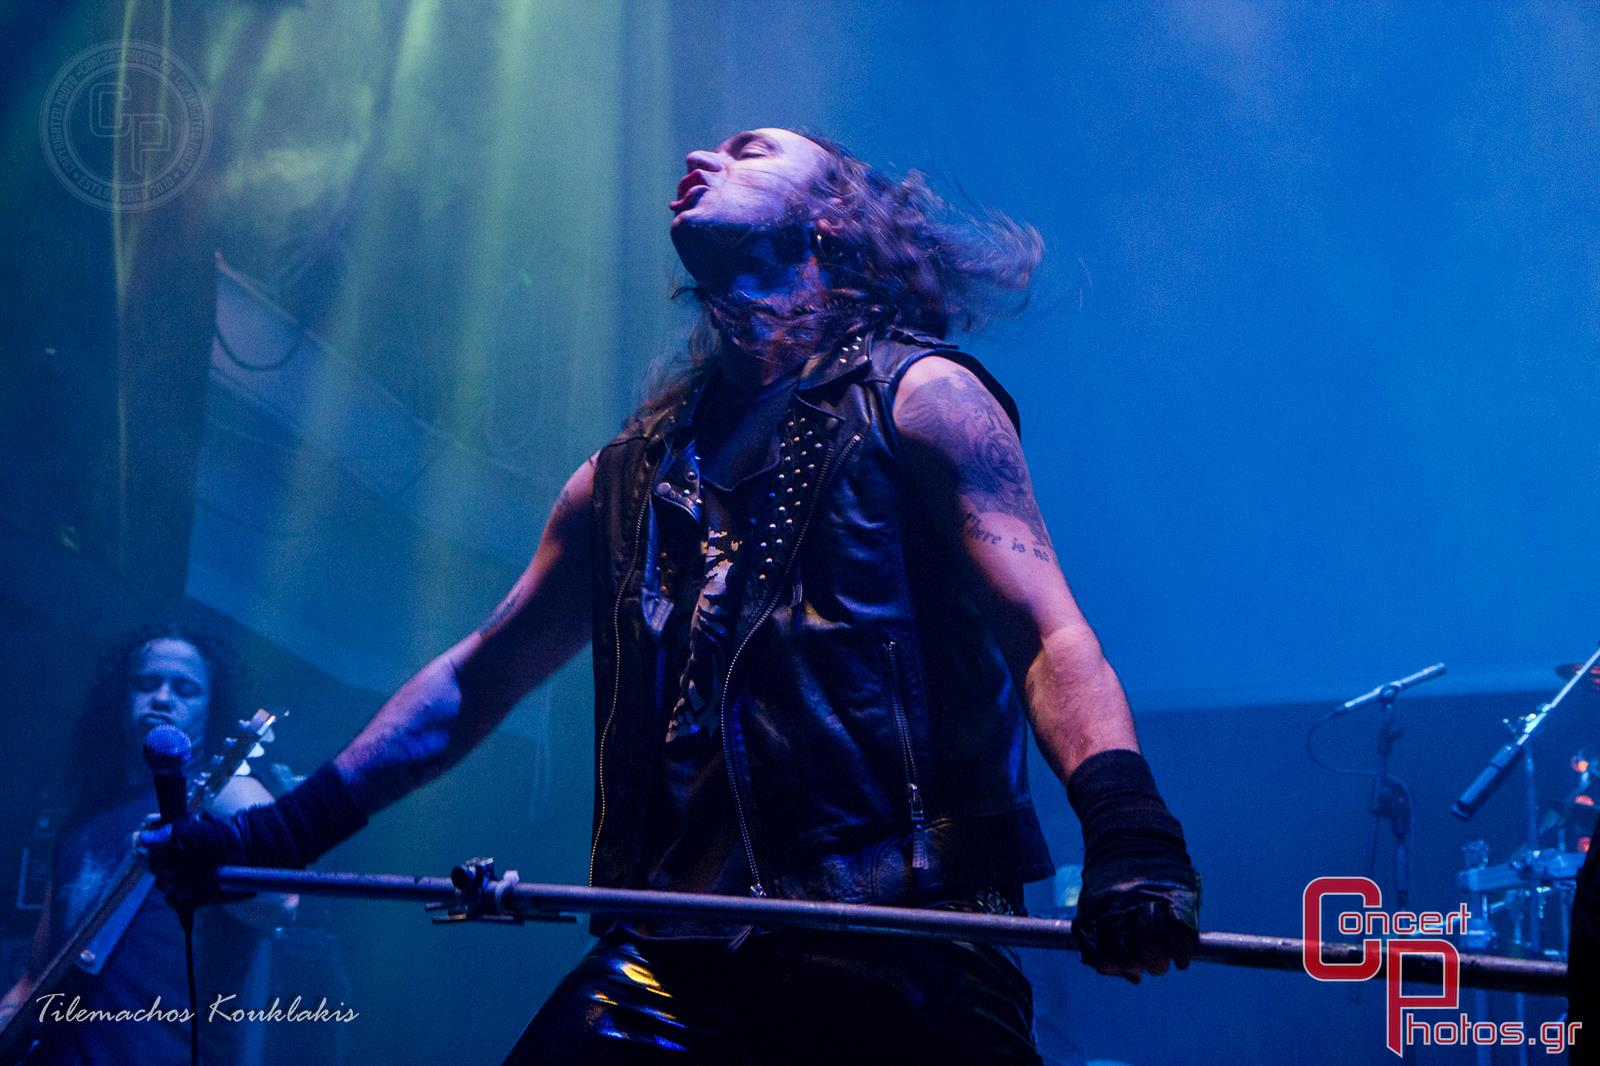 Moonspell-Moonspell photographer:  - IMG_5770